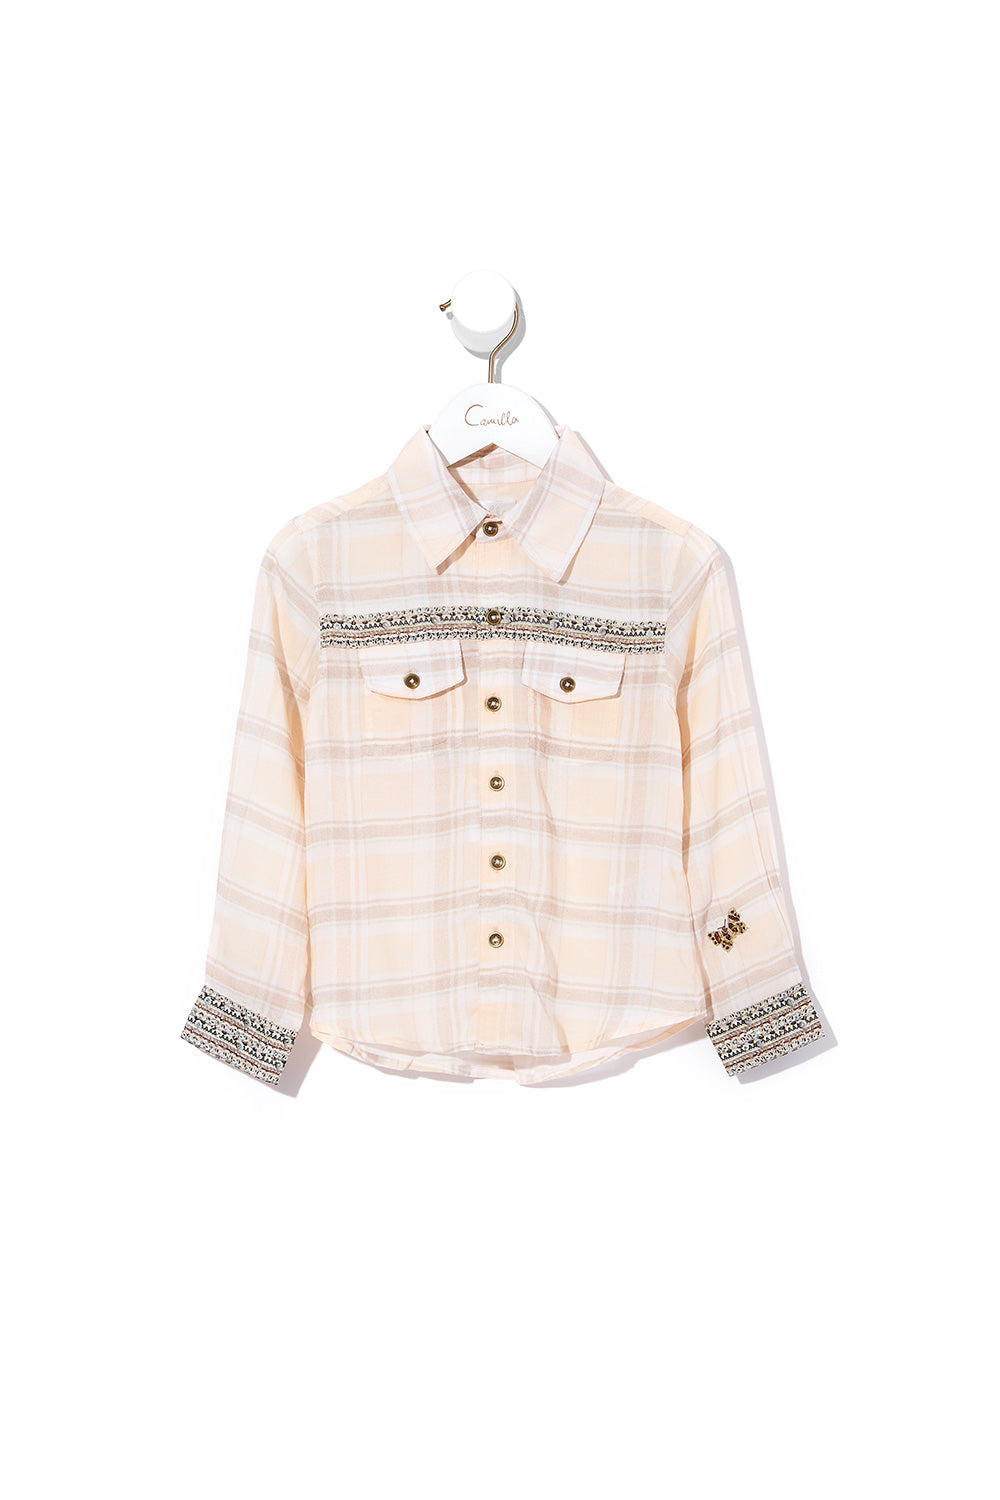 INFANTS BUTTON FRONT SHIRT KINDRED SKIES